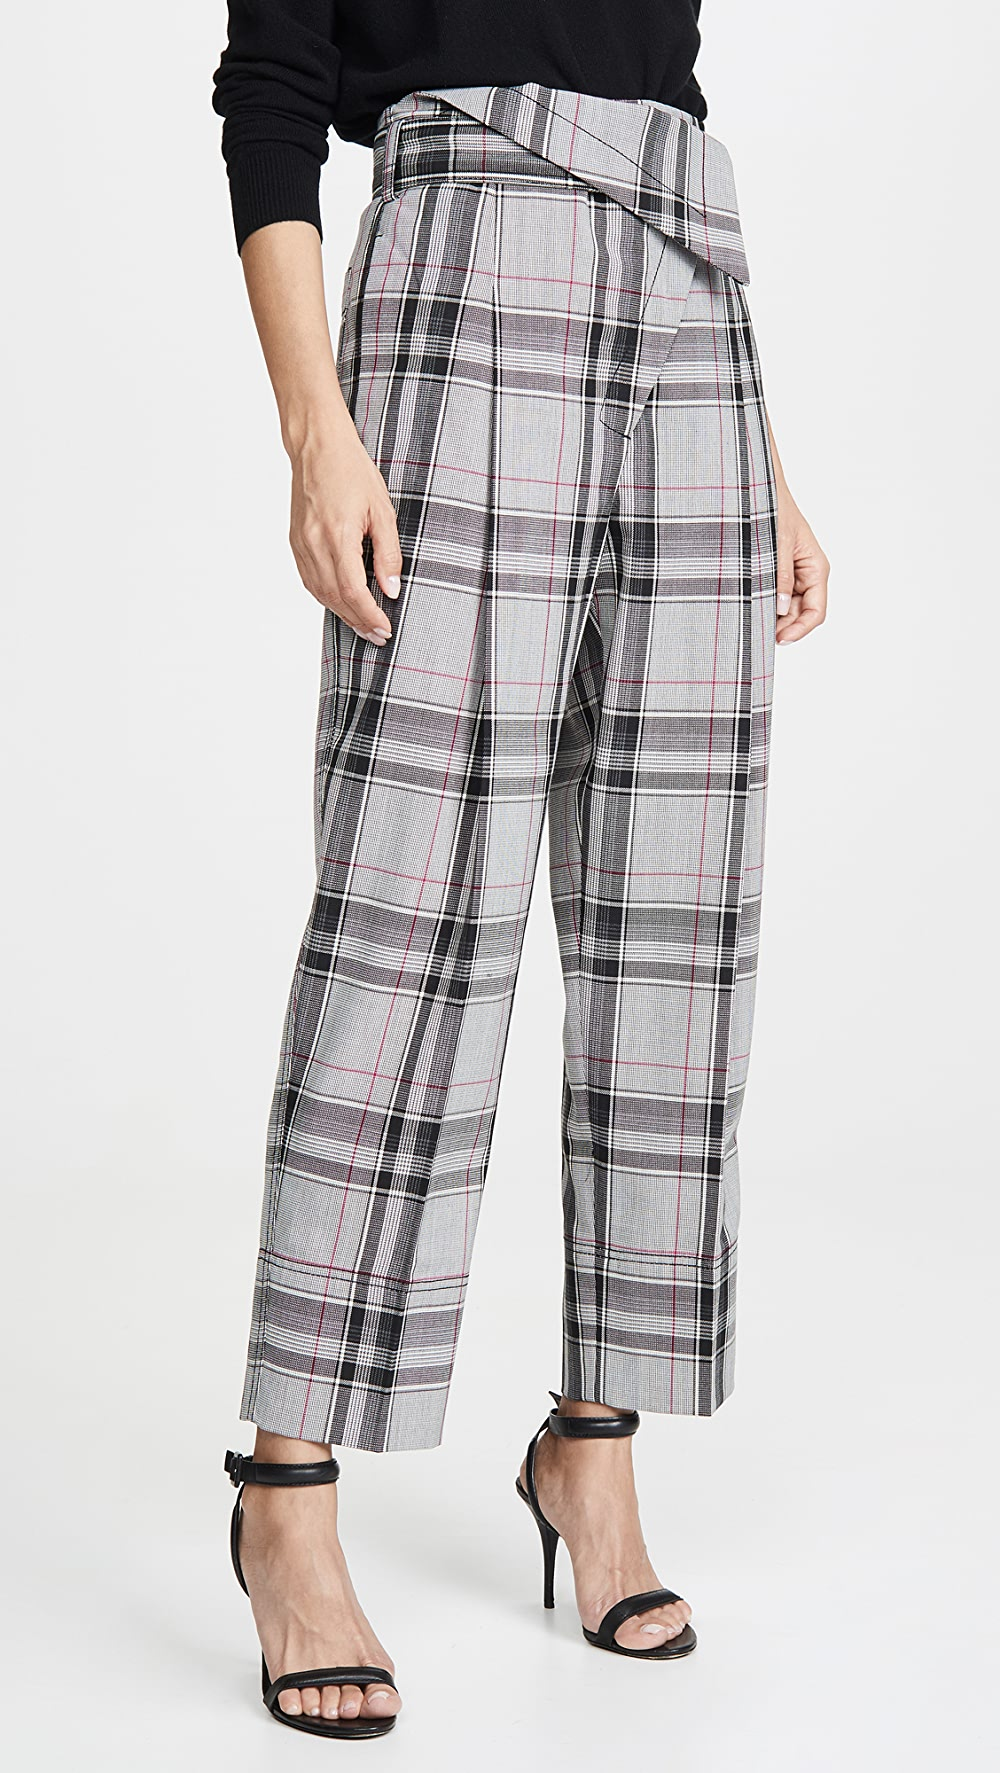 100% True 3.1 Phillip Lim - Plaid Belted Overlap Trousers Removing Obstruction